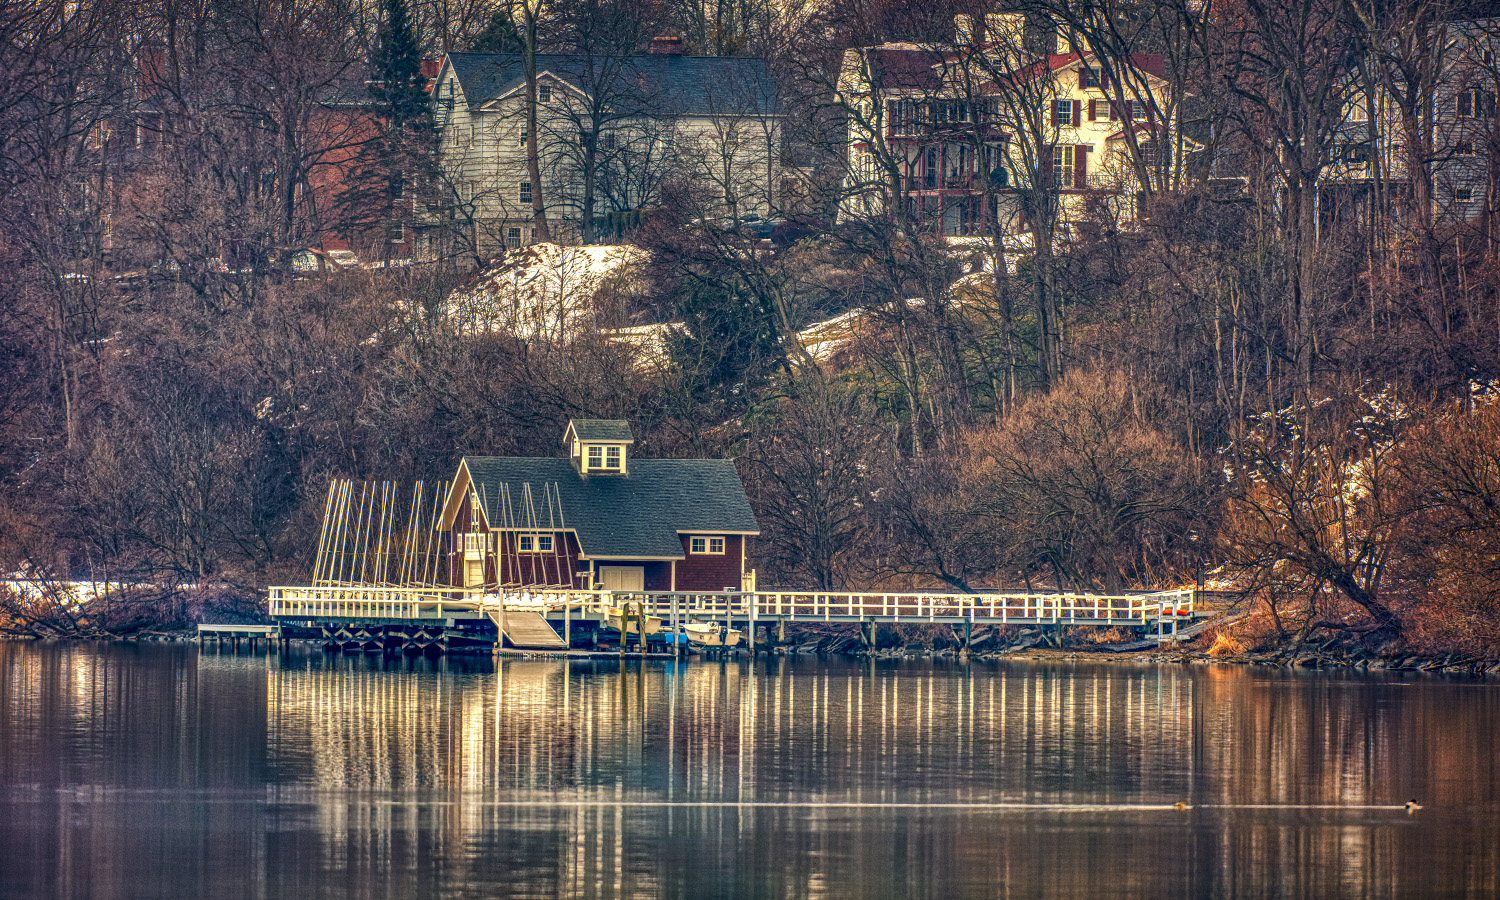 A reflection of the Bozzuto Boathouse shines on Seneca Lake.